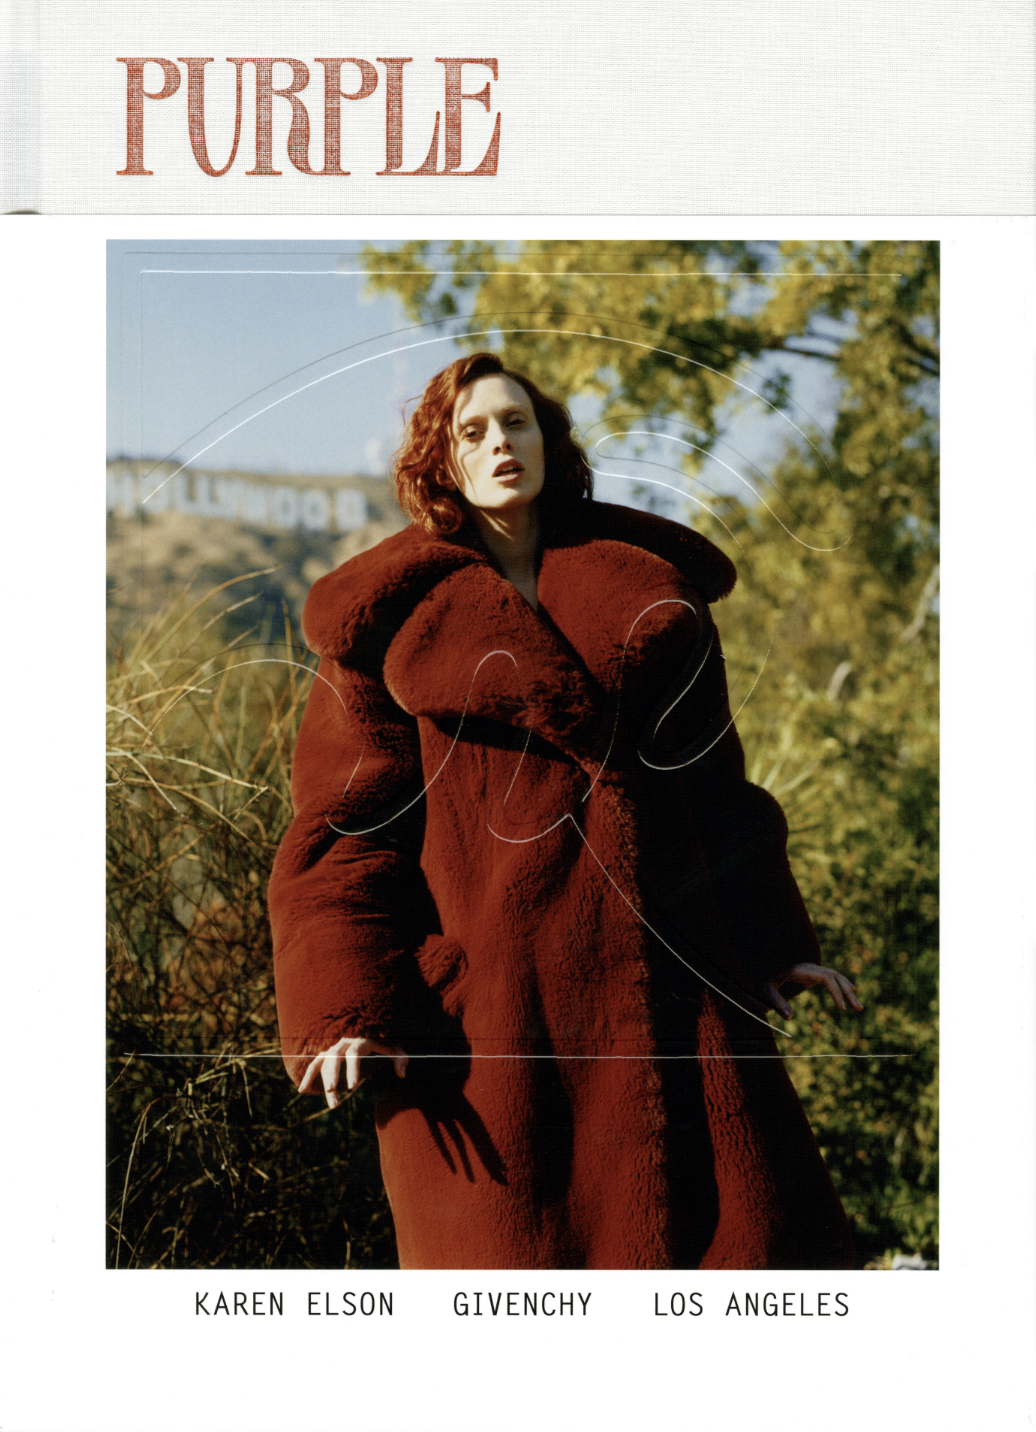 Pin by Trevor Chapman on Fashion Cultures Mood Board